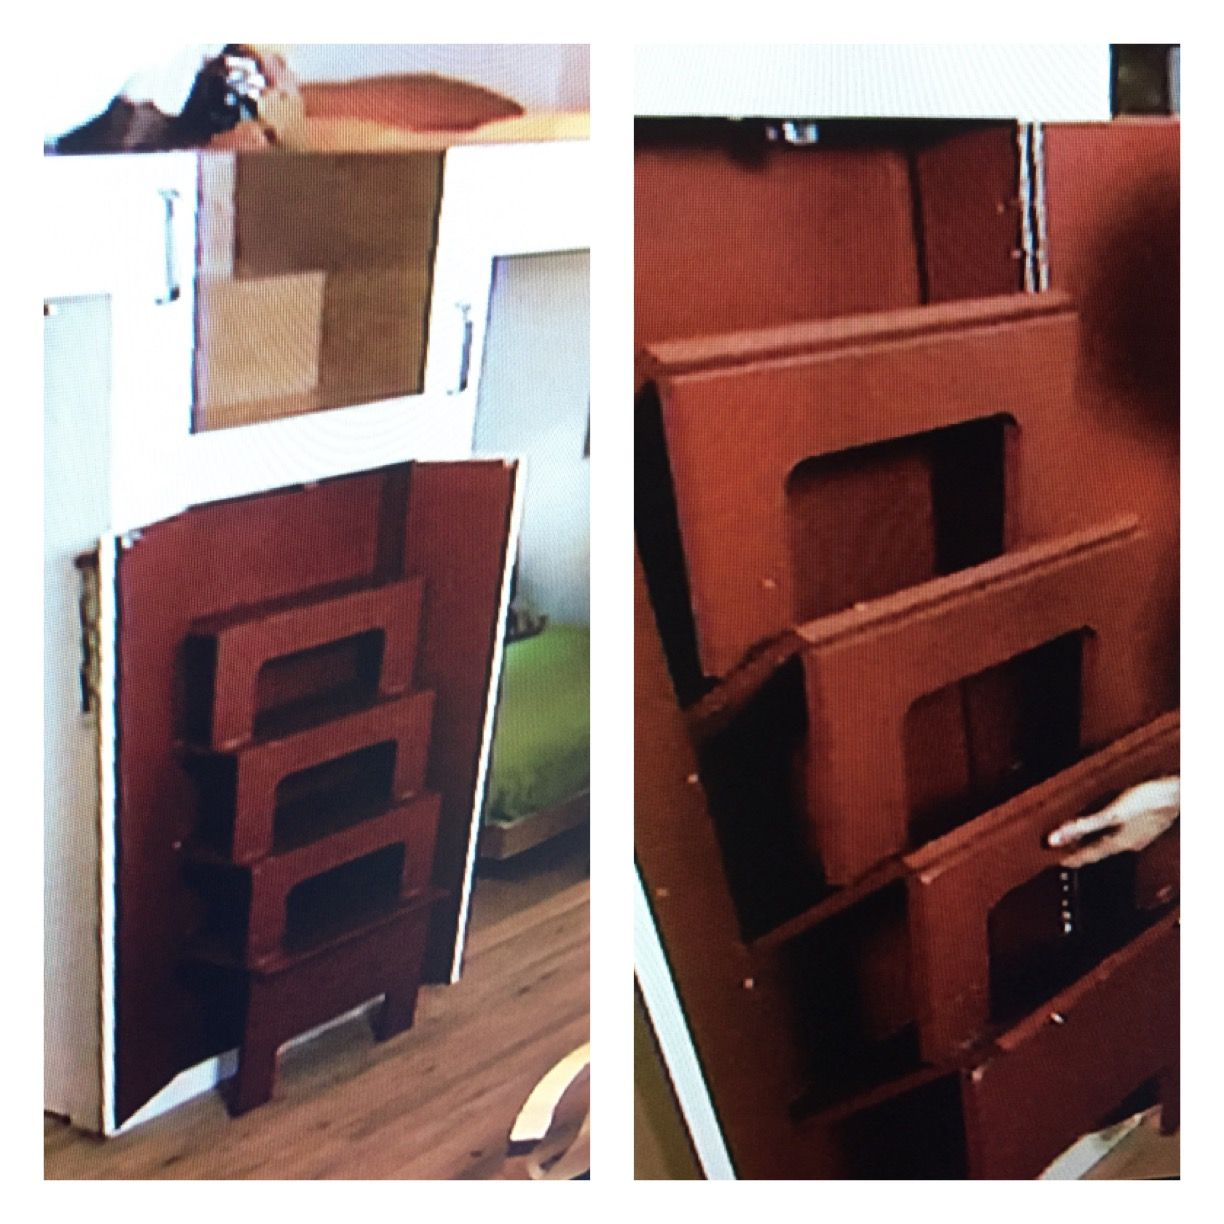 Stairs To A Loft Are Hidden In A Cabinet Then Fold Out When Needed! OMG